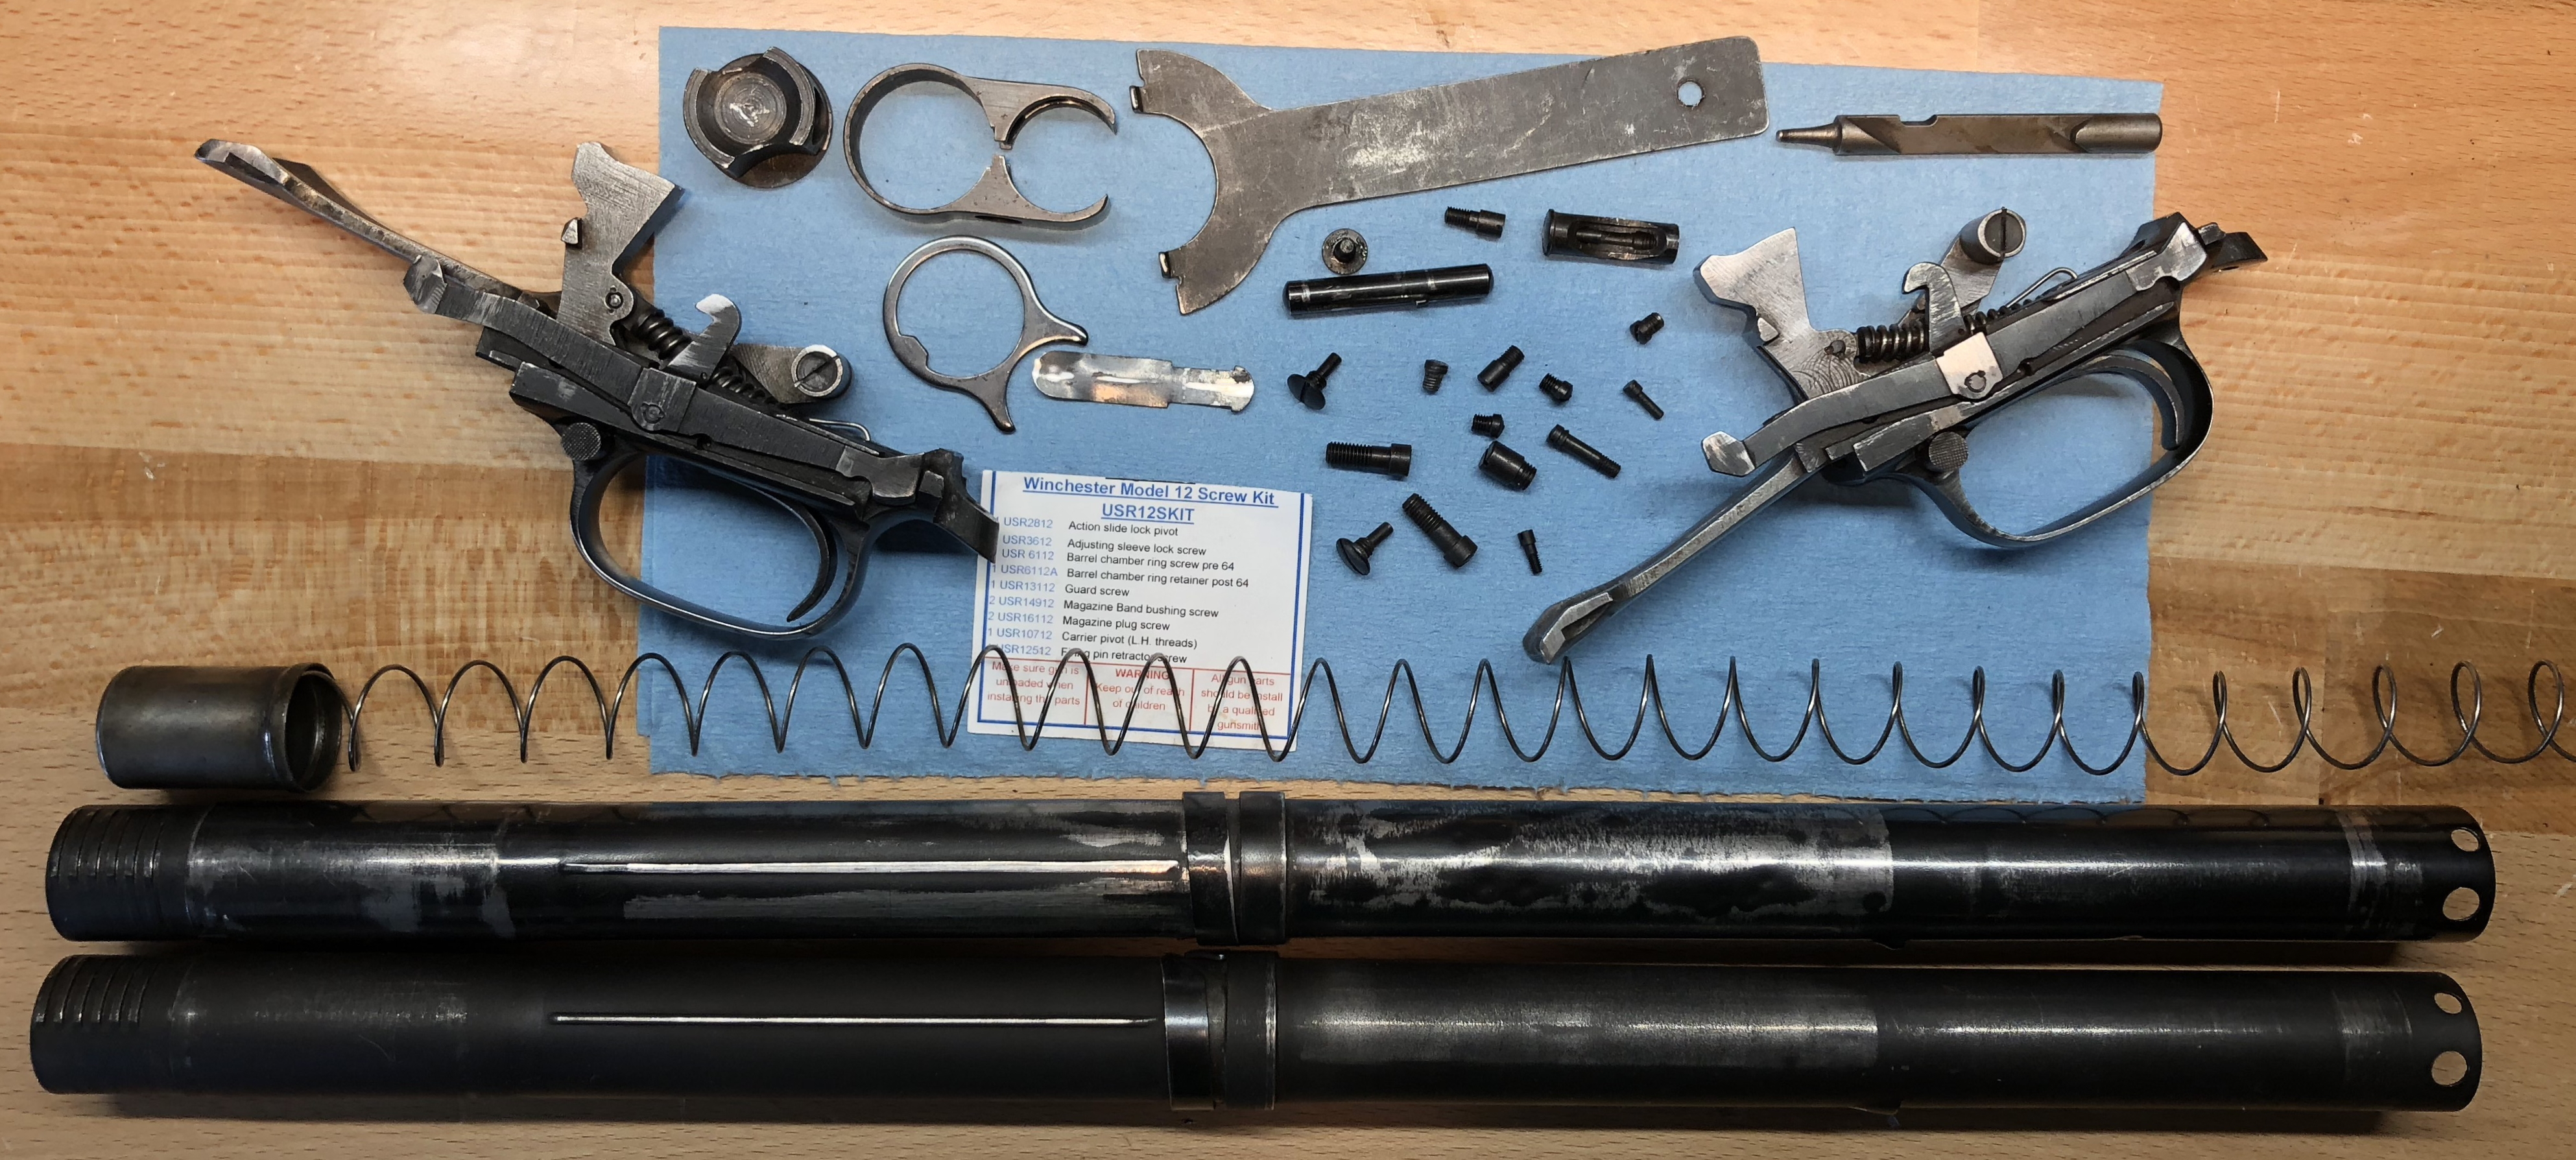 Sold - Winchester Model 12 Parts | Trap Shooters Forum